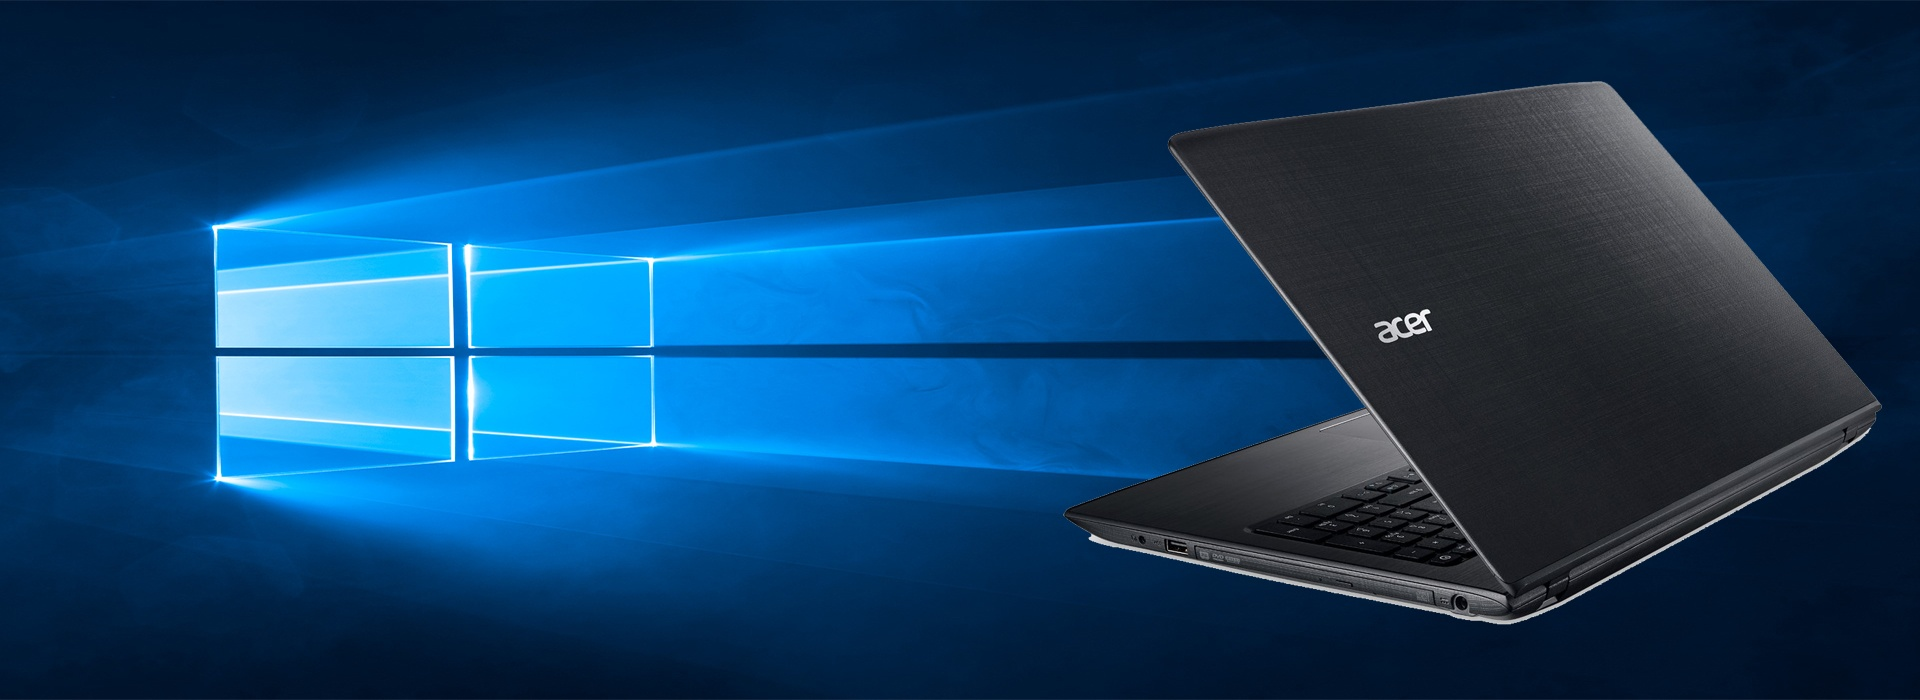 Windows 10 bluetooth drivers for acer aspire